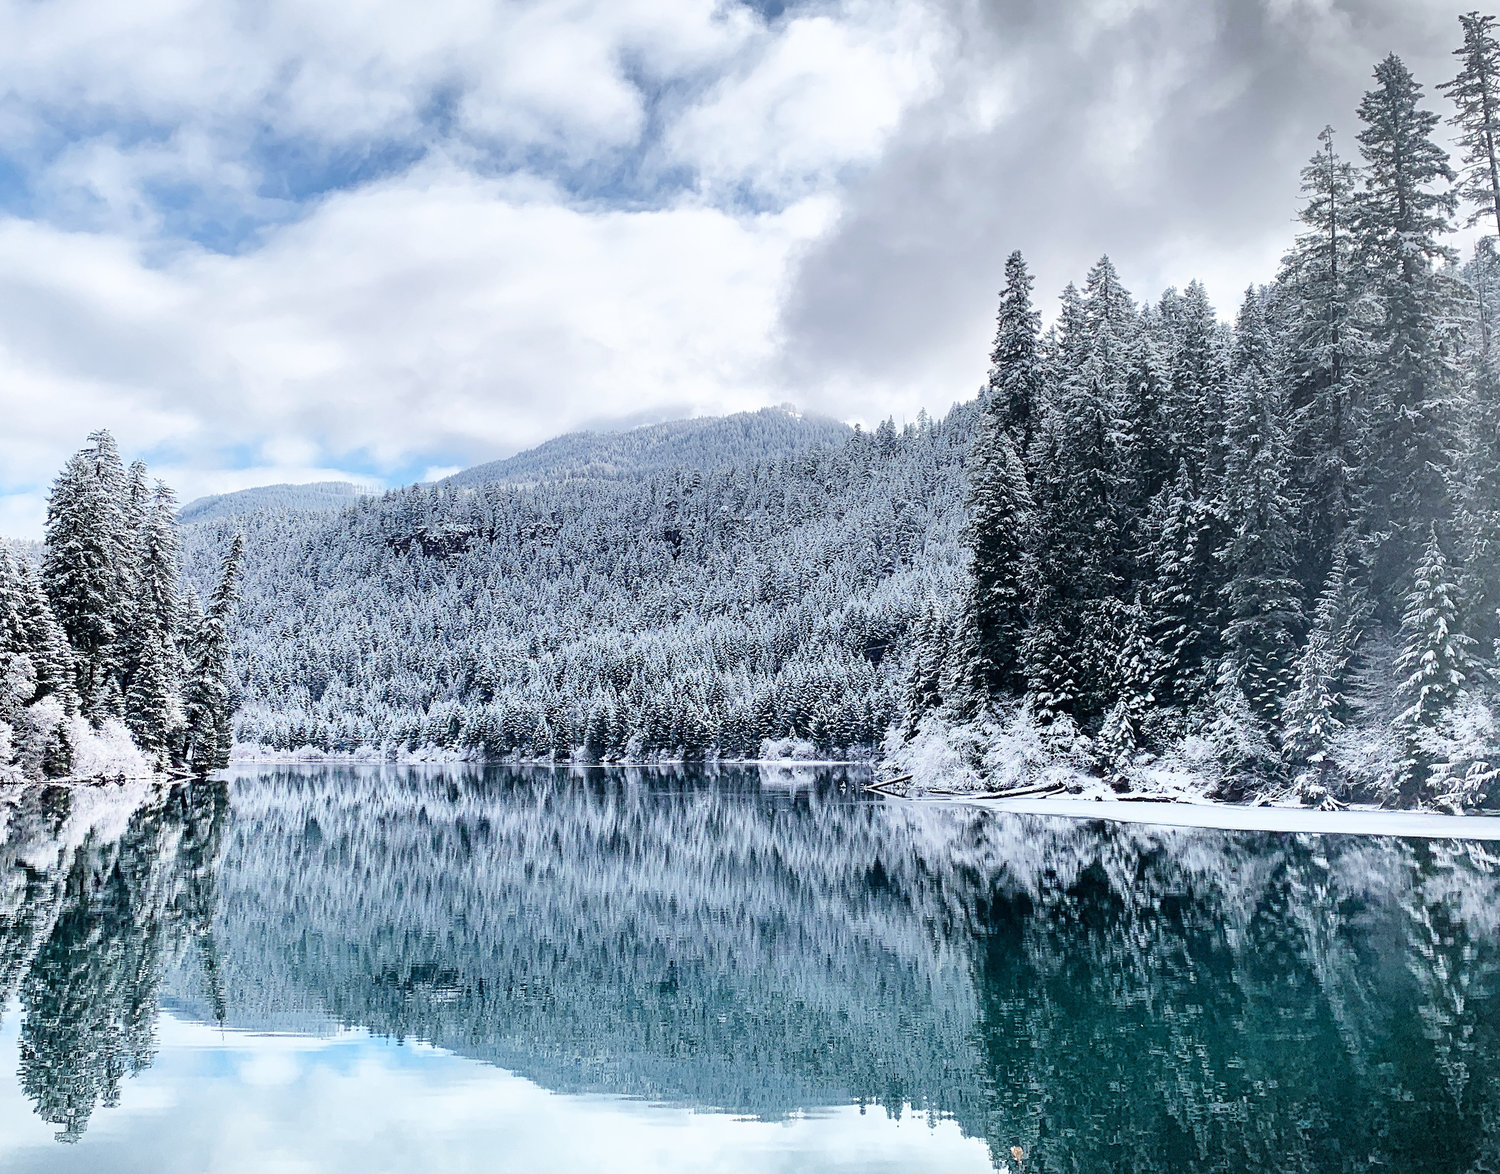 Featured Trip: Winter Camping near Crater Lake in Hank - a